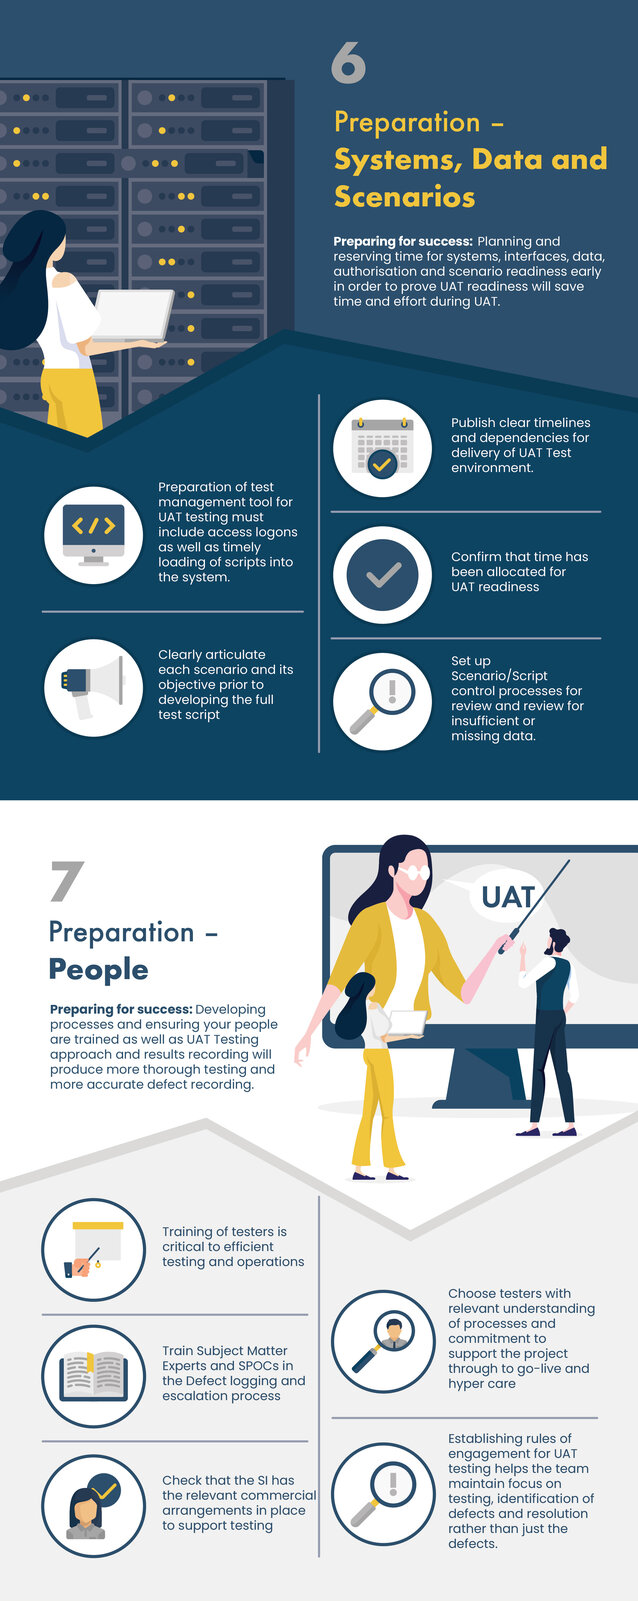 UAT tips and tricks part 3